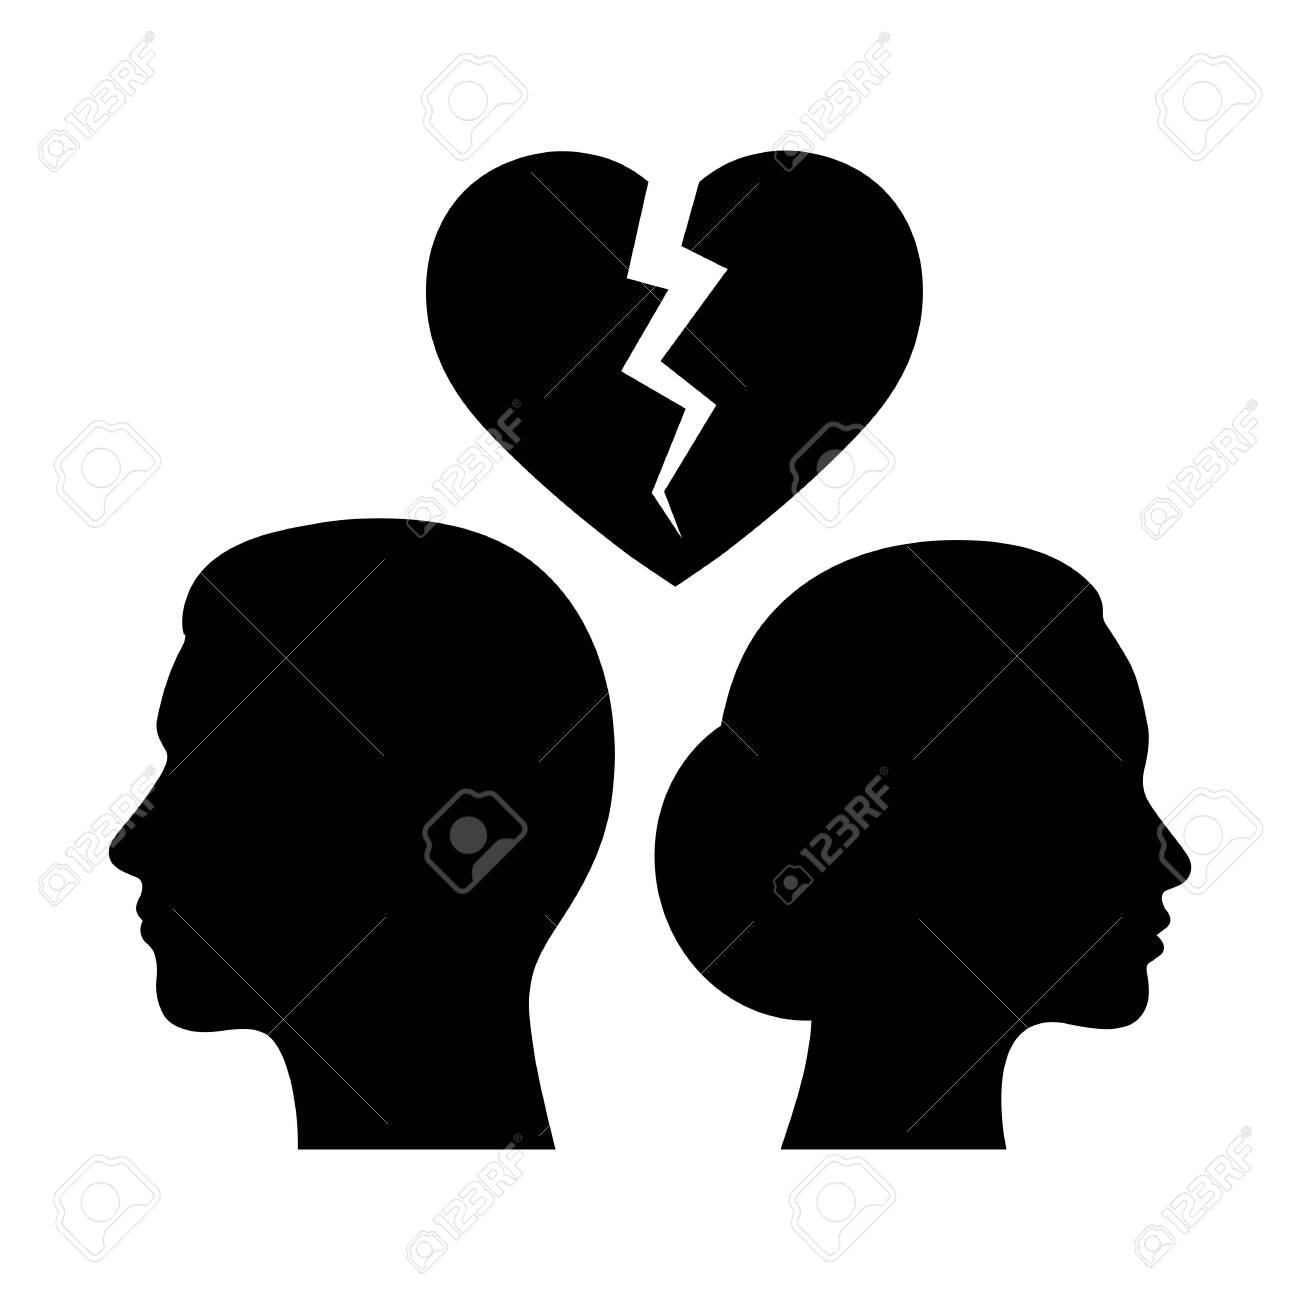 Woman and man on a background of broken heart. - 128630293